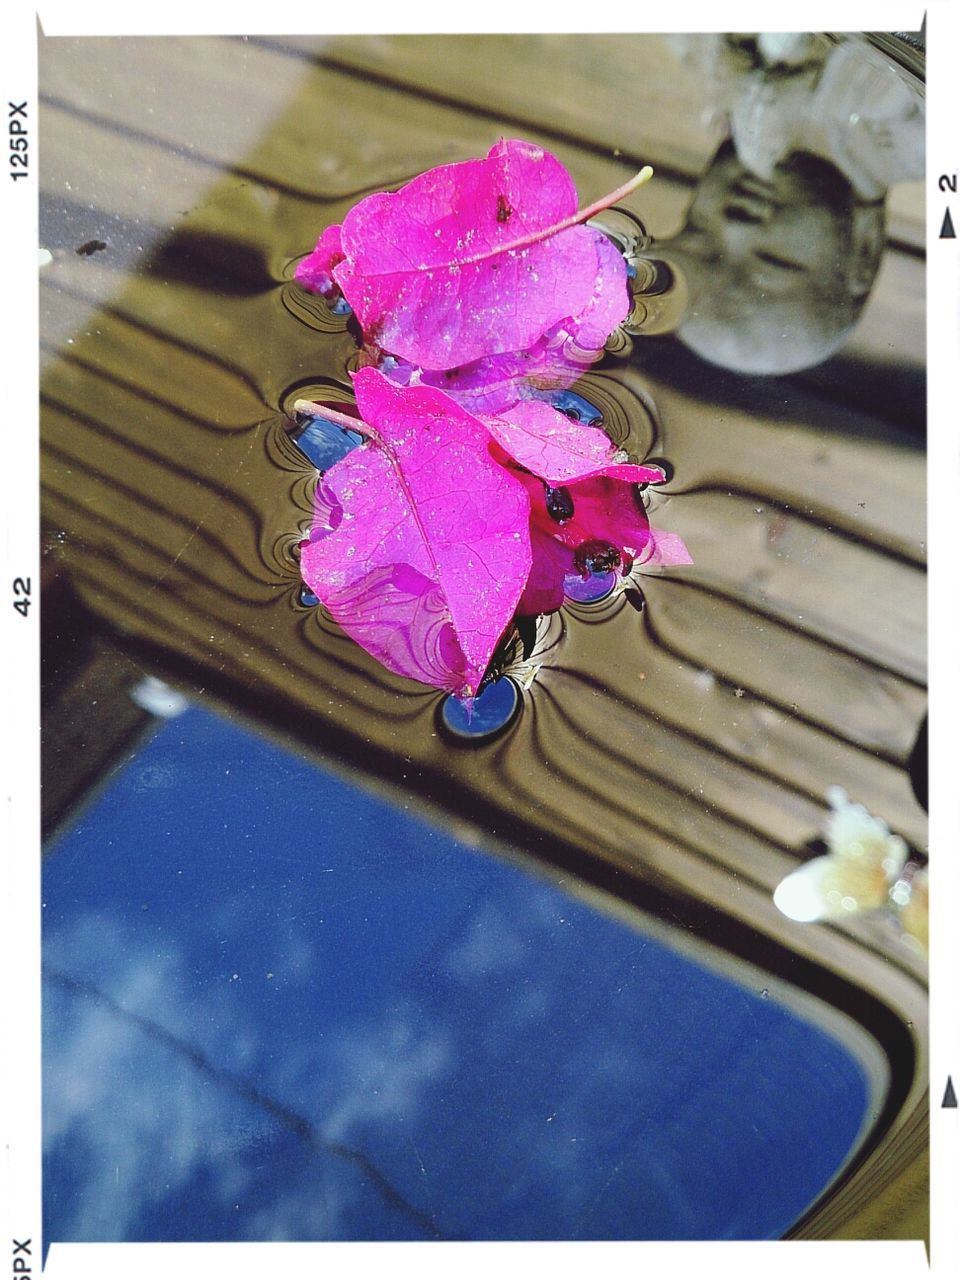 flower, petal, nature, water, beauty in nature, fragility, no people, freshness, wet, close-up, flower head, pink color, outdoors, growth, day, plant